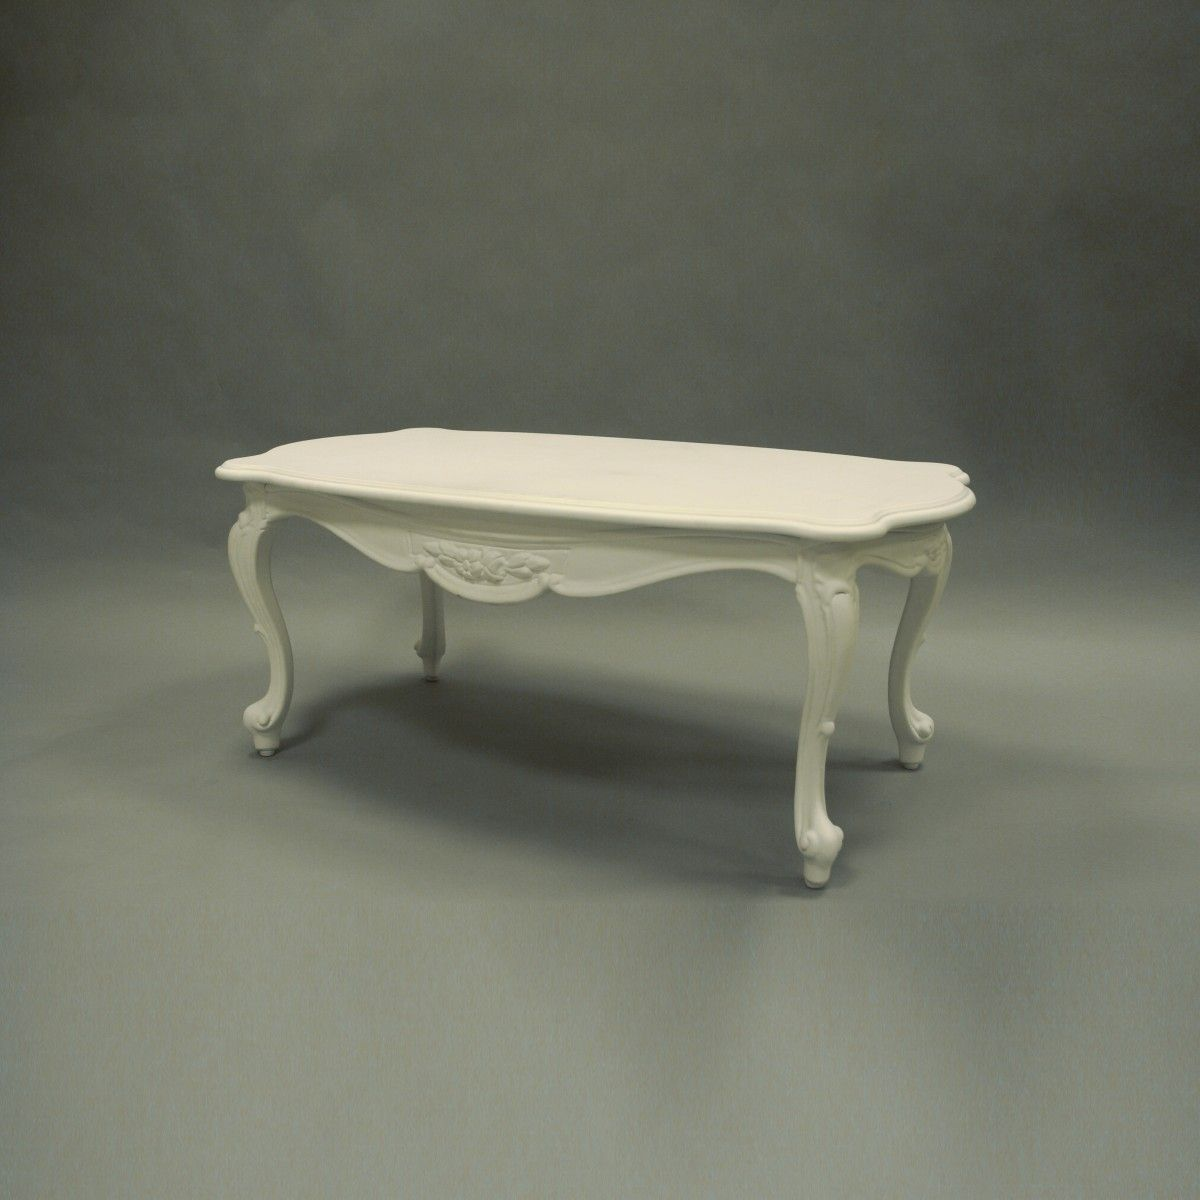 New Baroque design coffee table / wooden / rectangular - LOUIS by ...